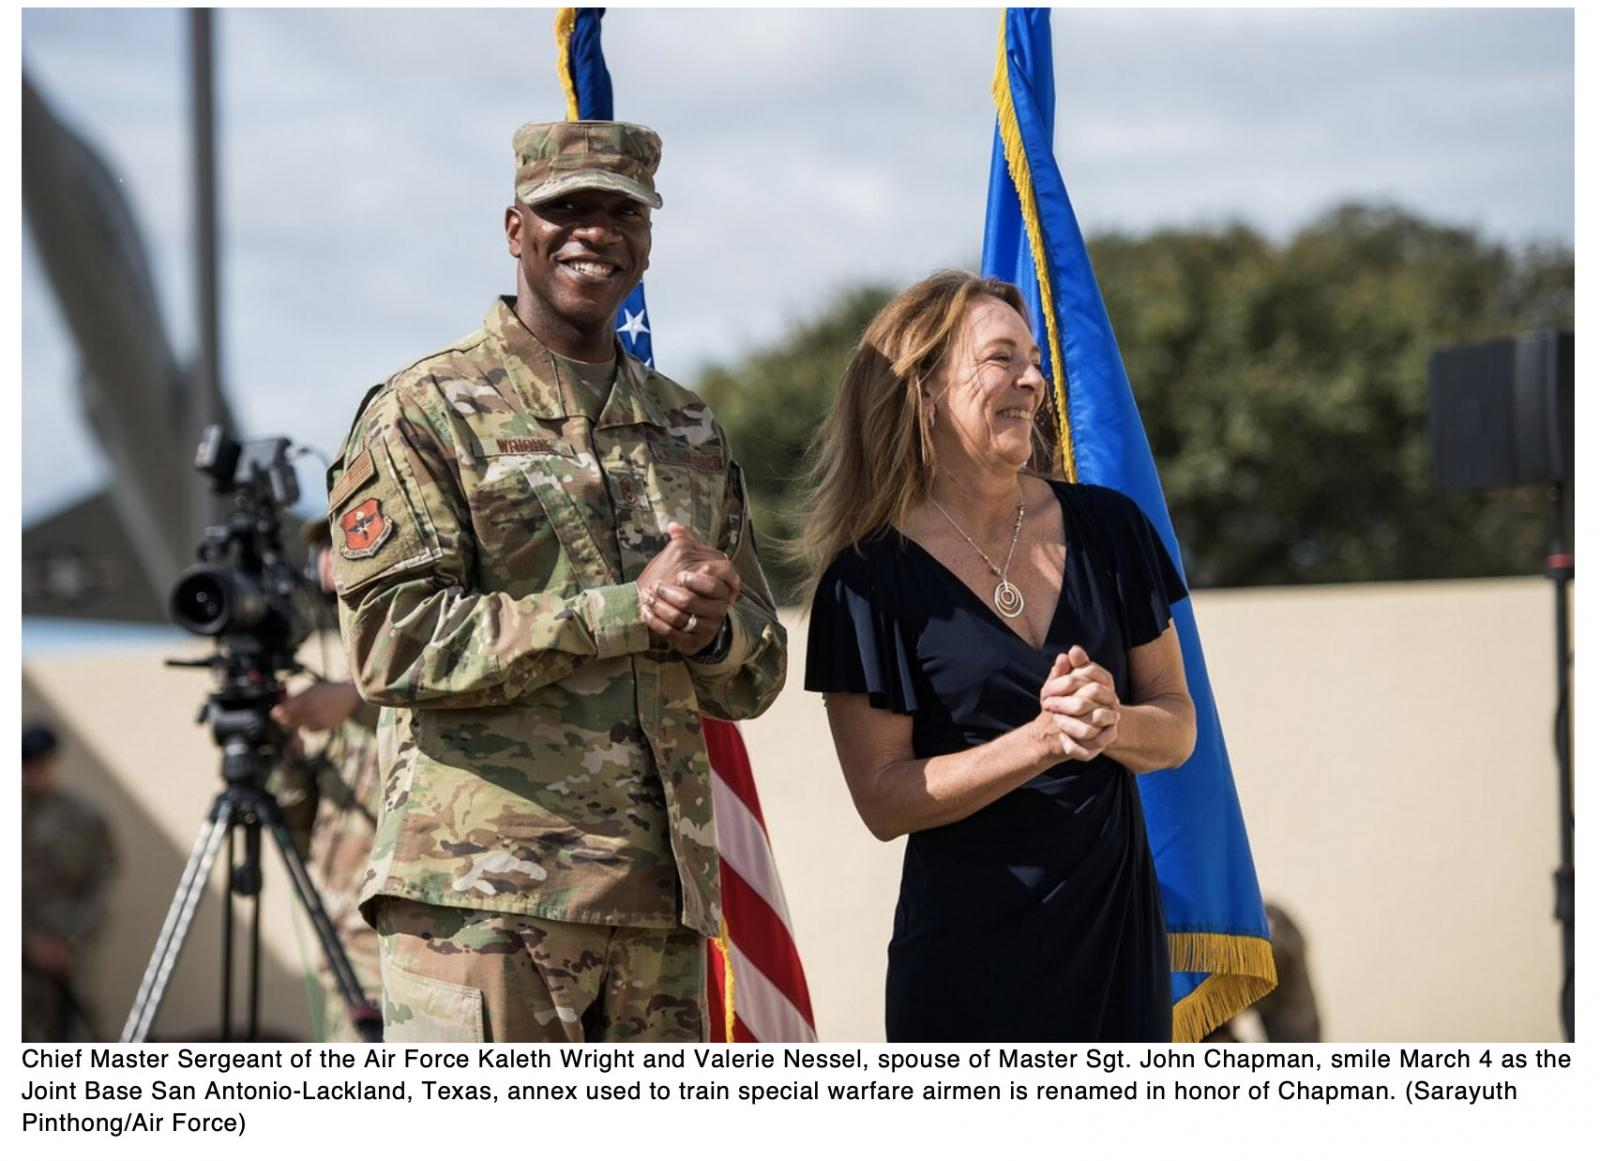 Special warfare training annex renamed for Medal of Honor recipient Chapman